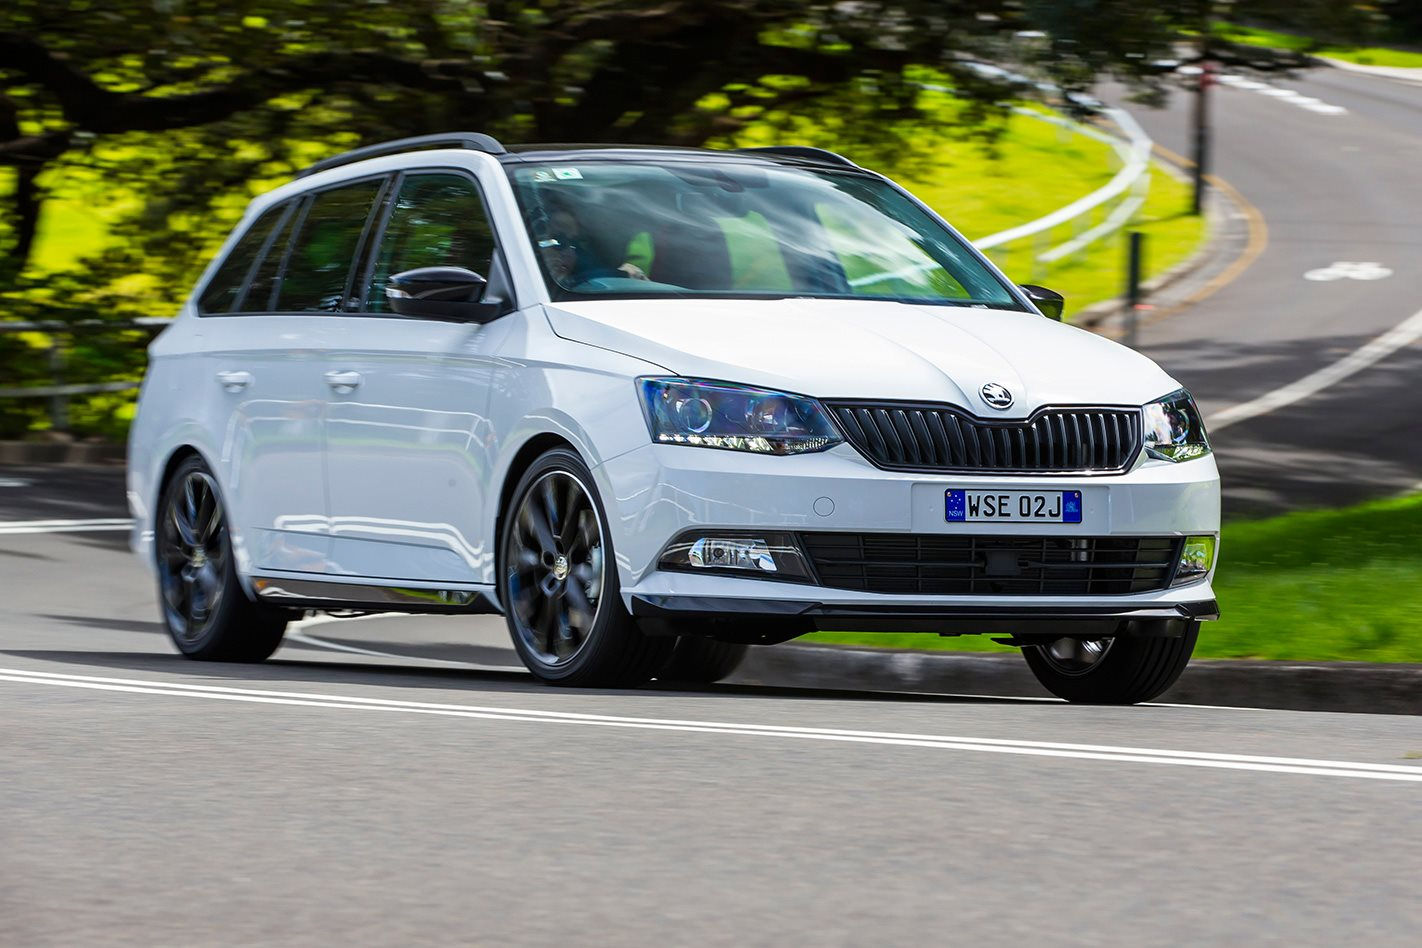 2016 skoda fabia monte carlo review wheels. Black Bedroom Furniture Sets. Home Design Ideas